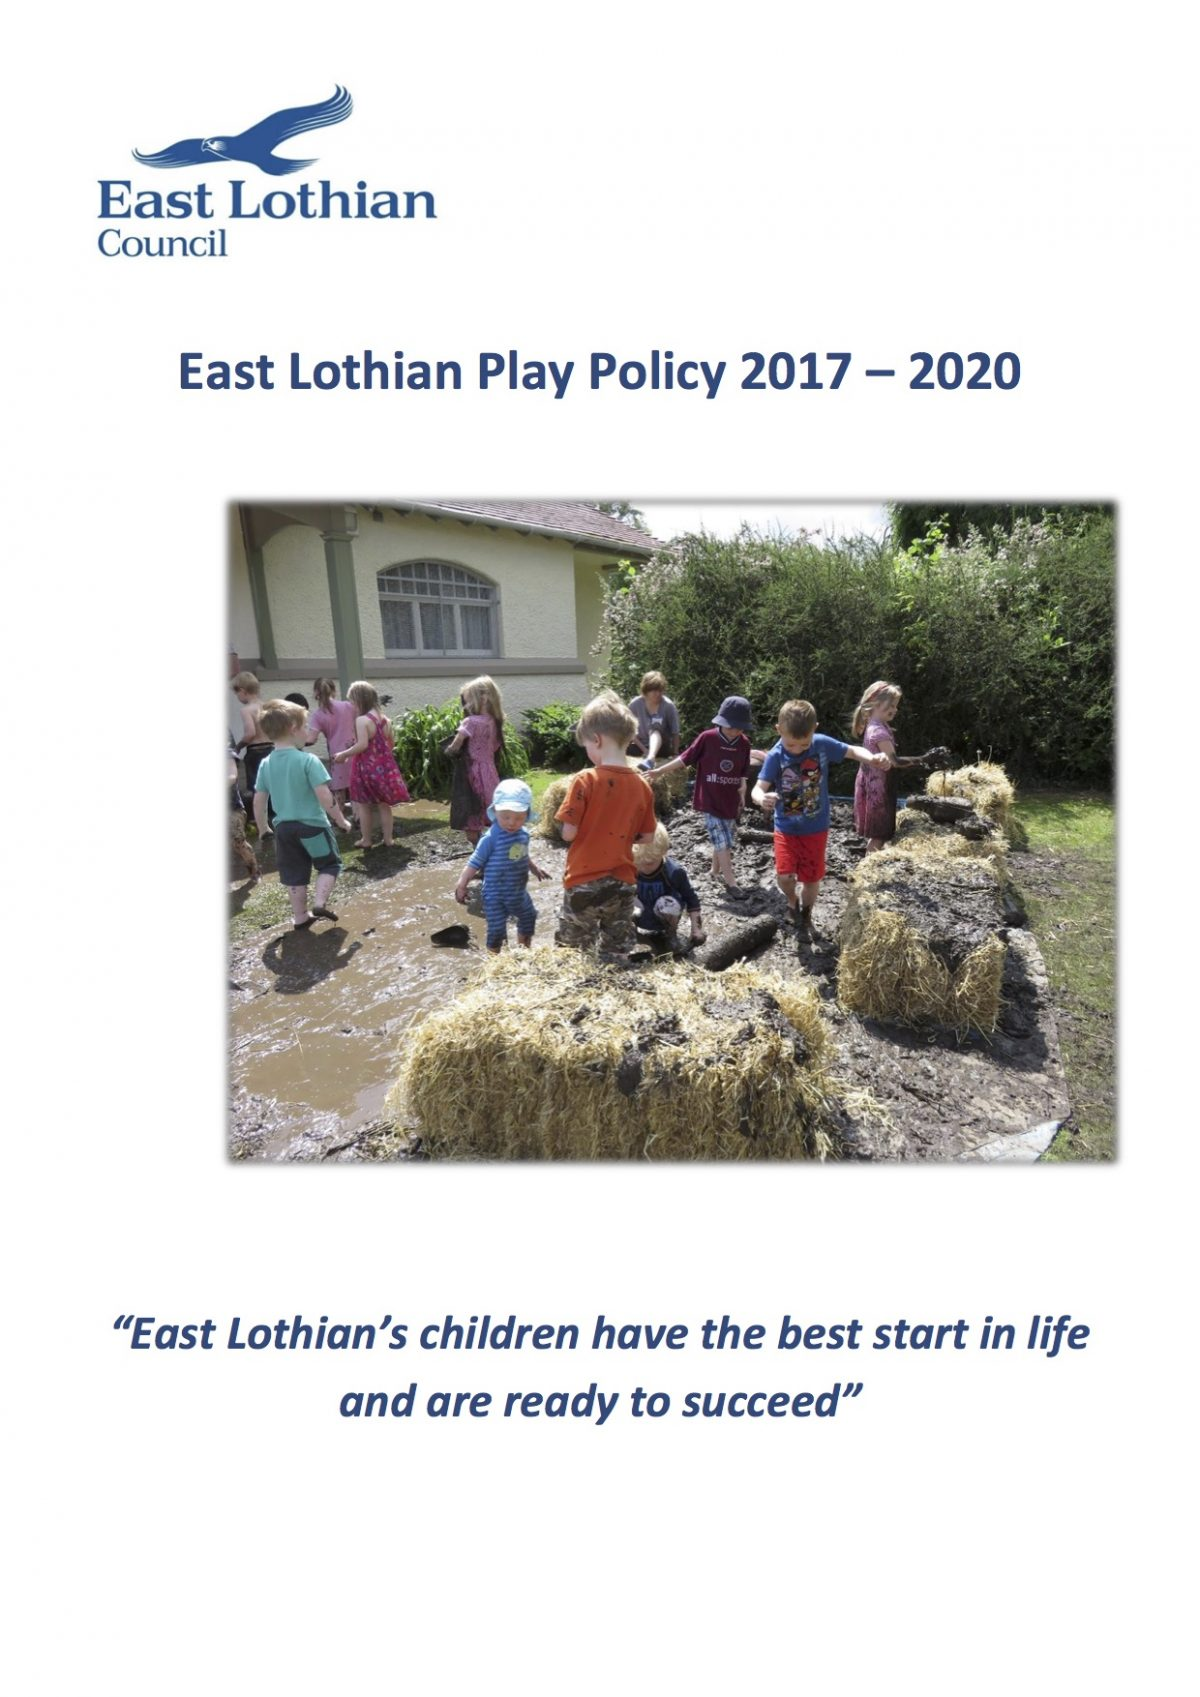 East Lothian Play Policy 2017 – 2020